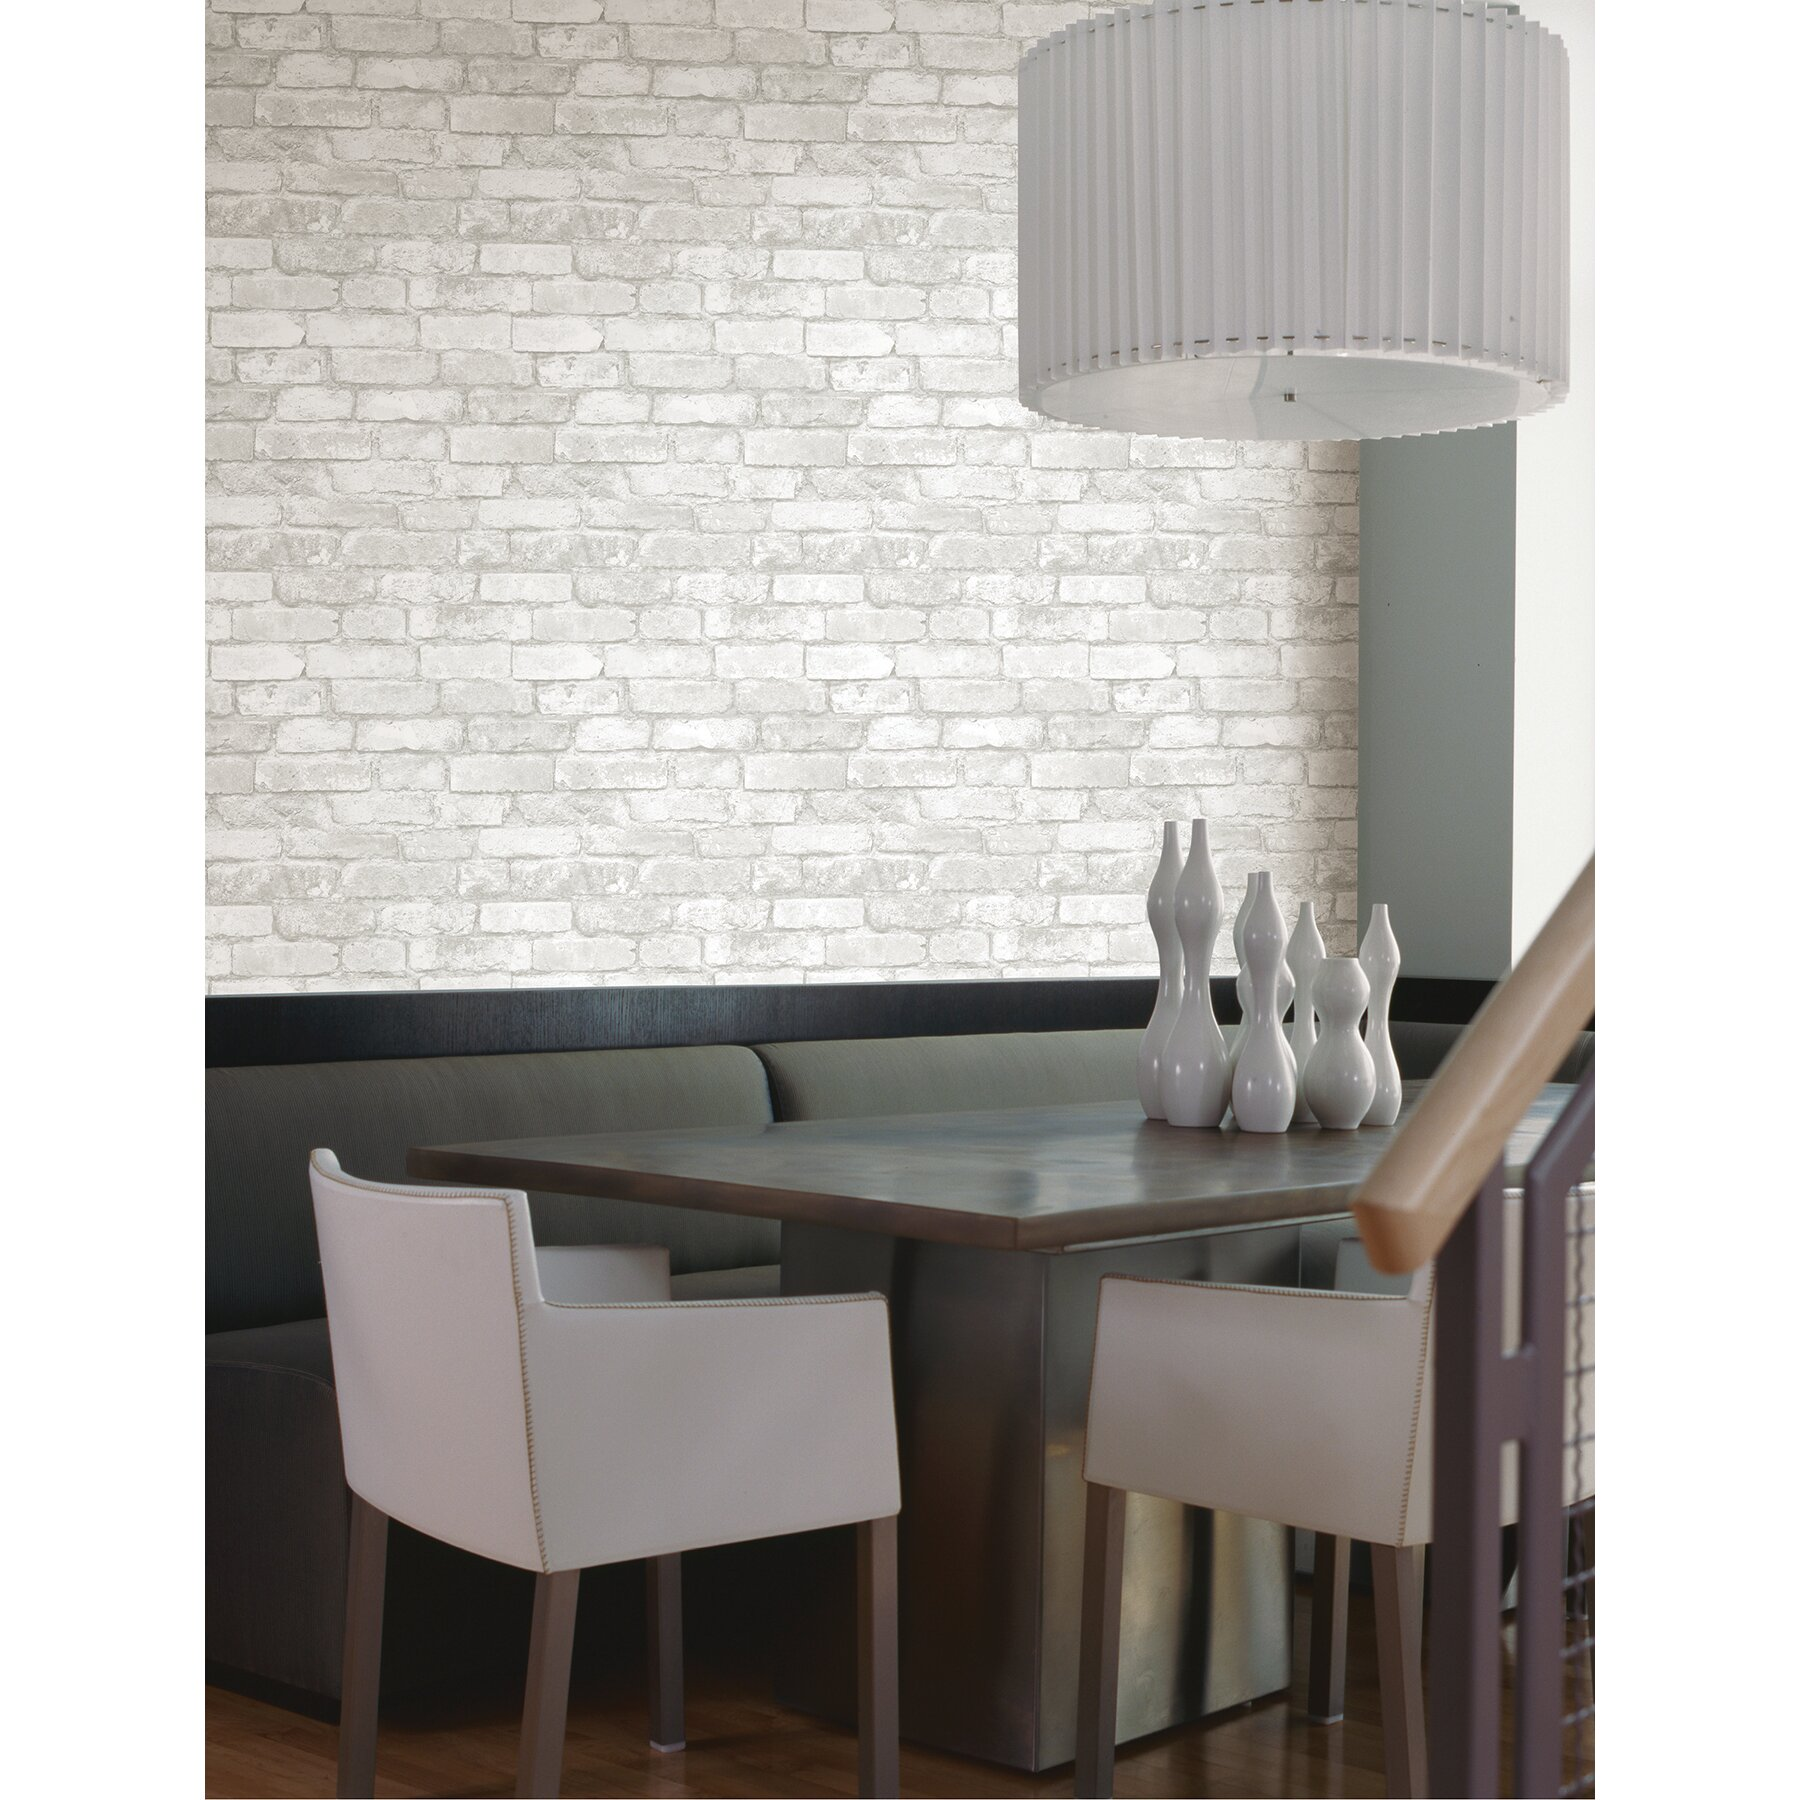 Brewster home fashions oxford brickwork exposed 33 39 x 20 5 for Brick wallpaper sale